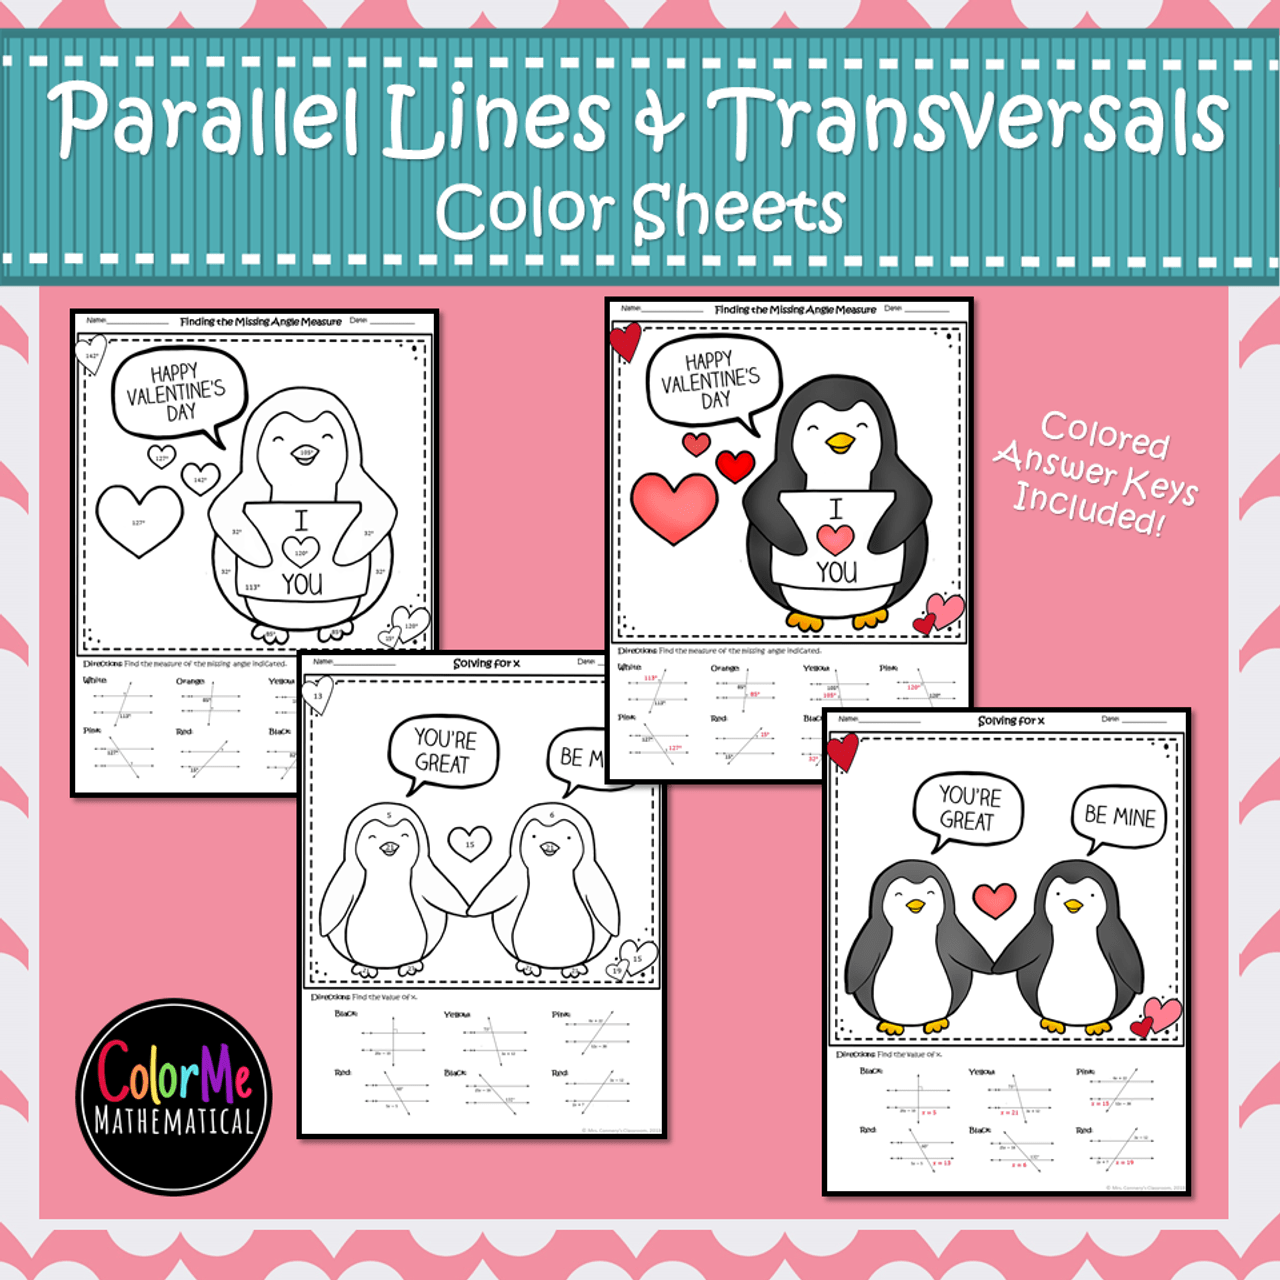 Parallel Lines cut by a Transversal Color by Number Worksheets - Amped Up  Learning [ 1280 x 1280 Pixel ]